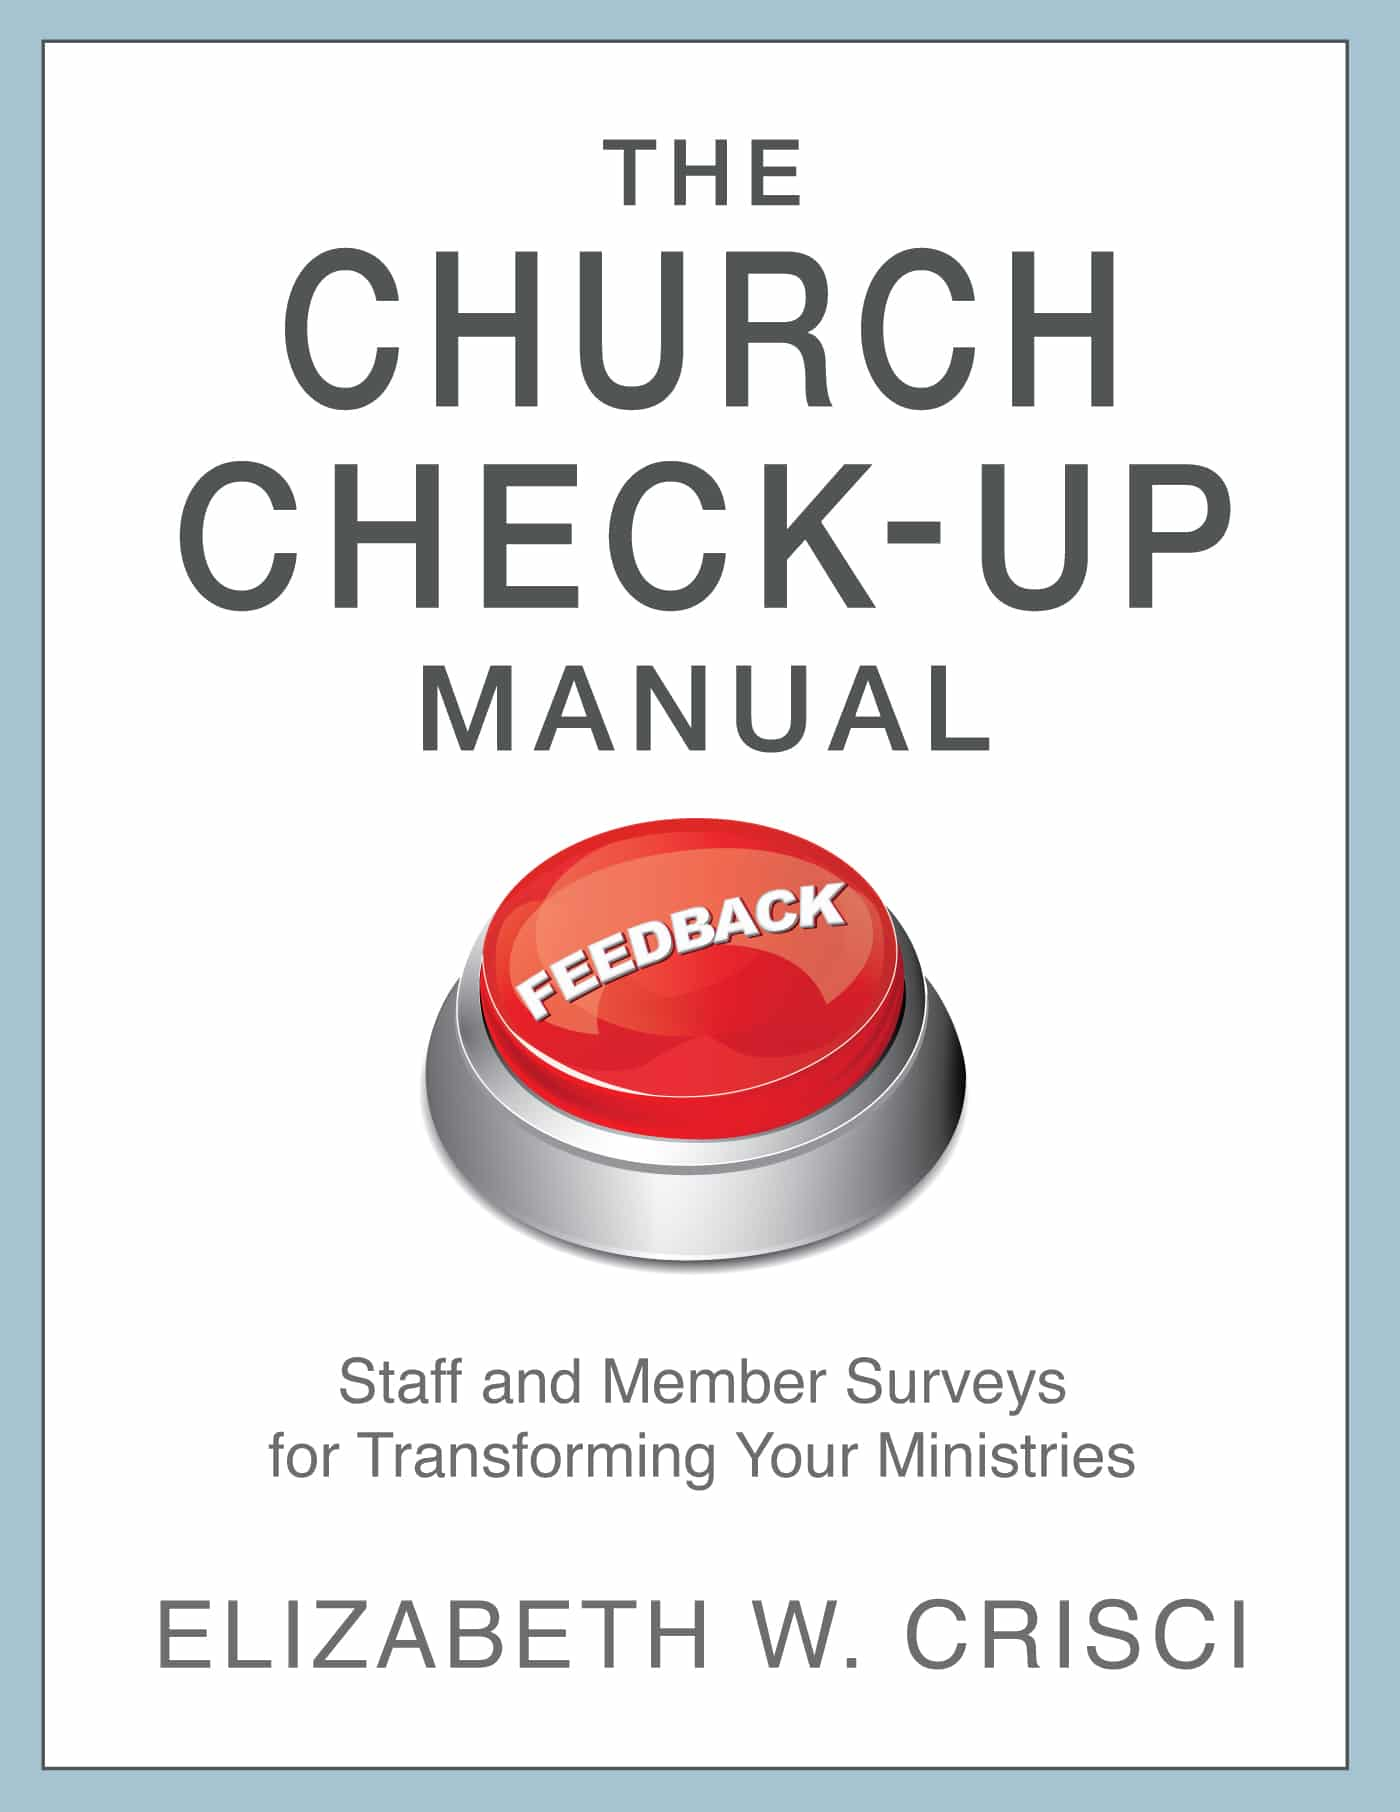 The Church Check-Up Manual